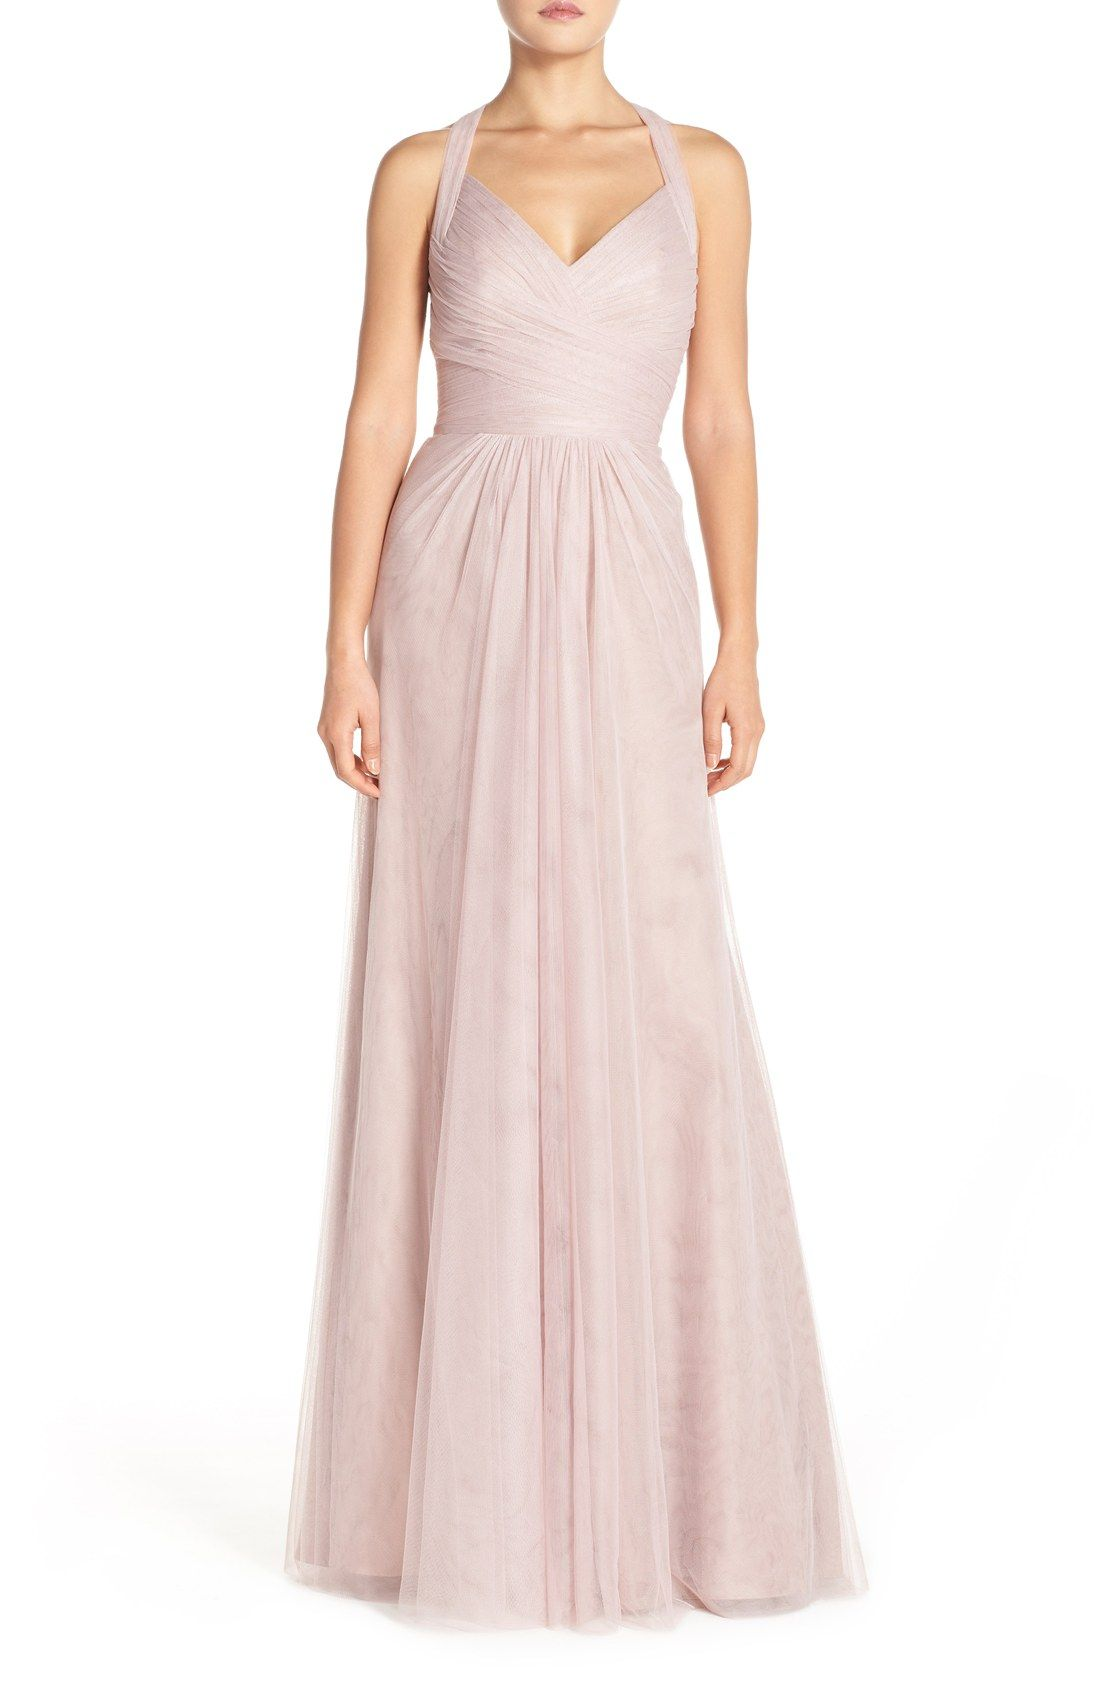 Cerise pink bridesmaid dress  New Monique Lhuillier Bridesmaids Sleeveless VNeck Tulle Gown